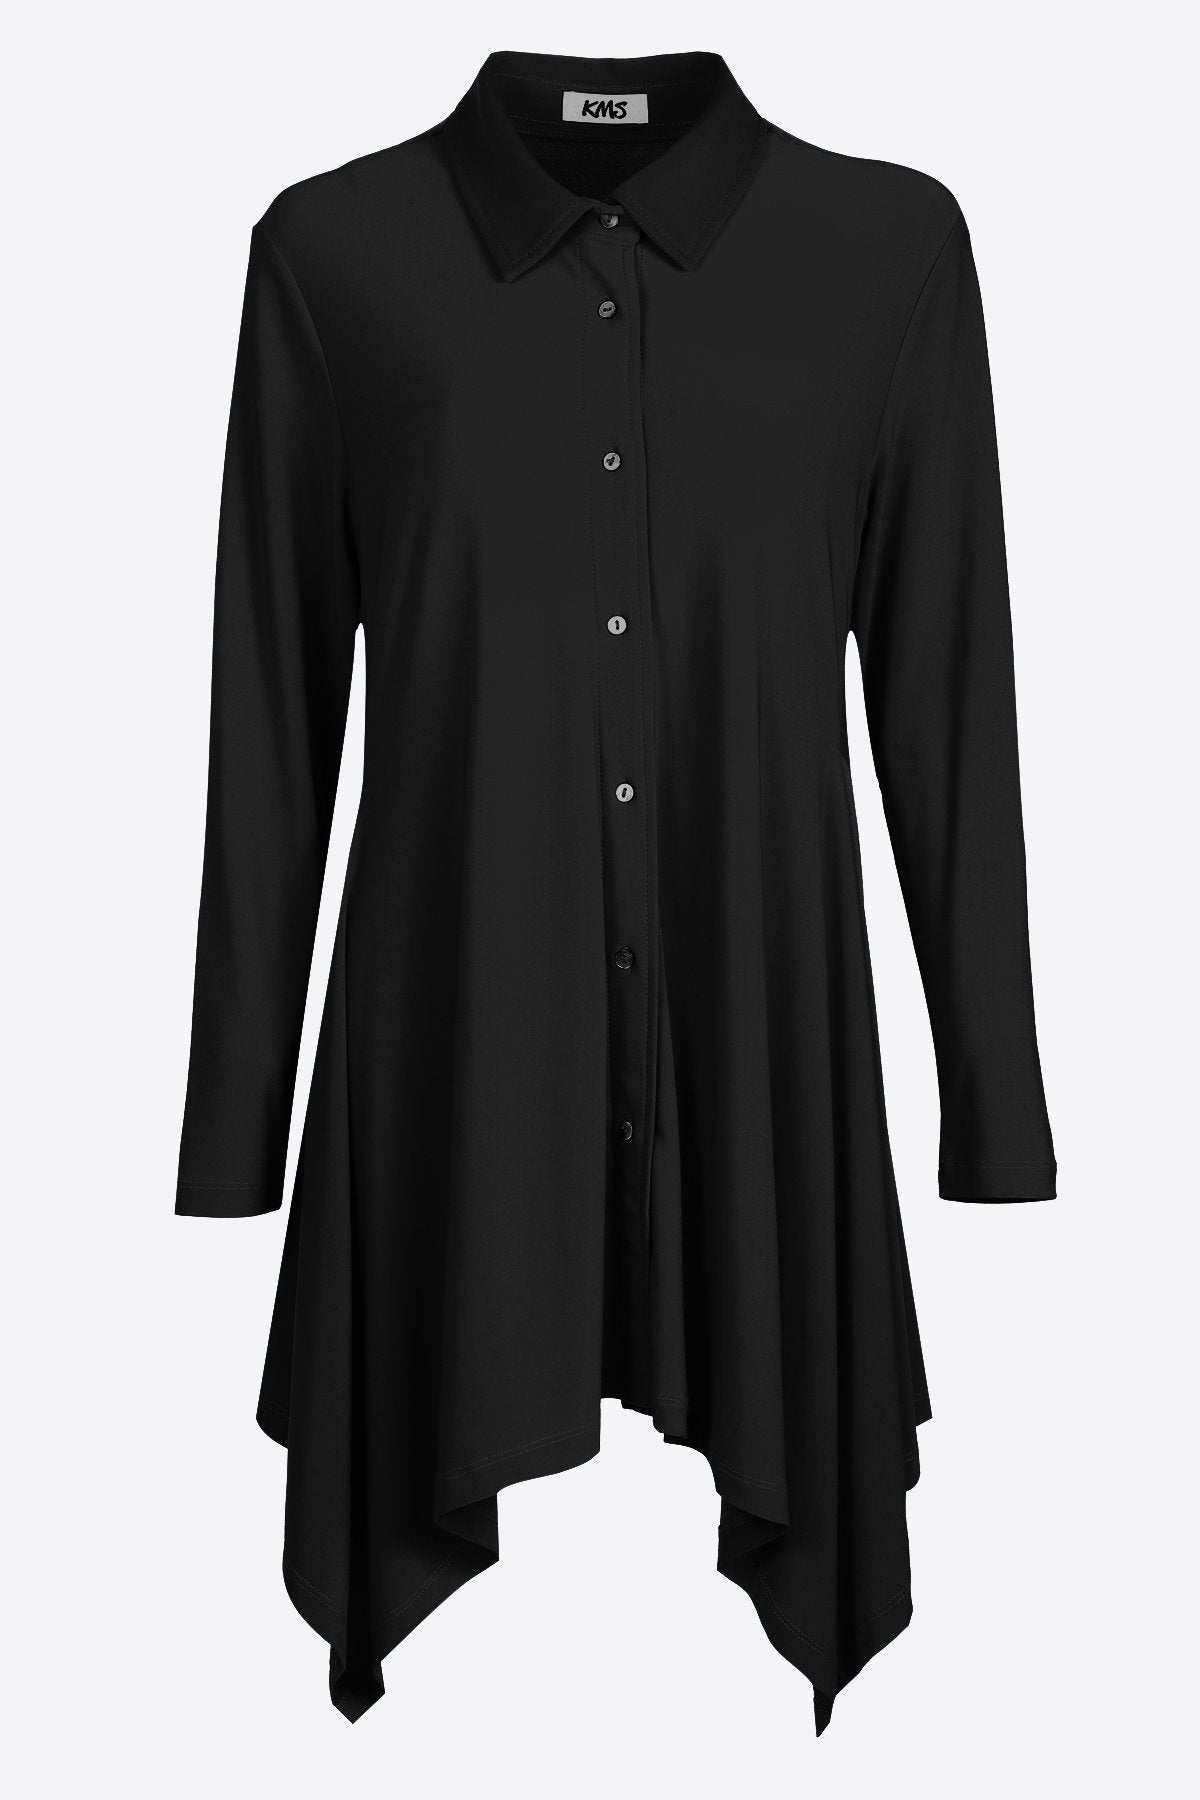 BUTTON THROUGH BLOUSE BLACK